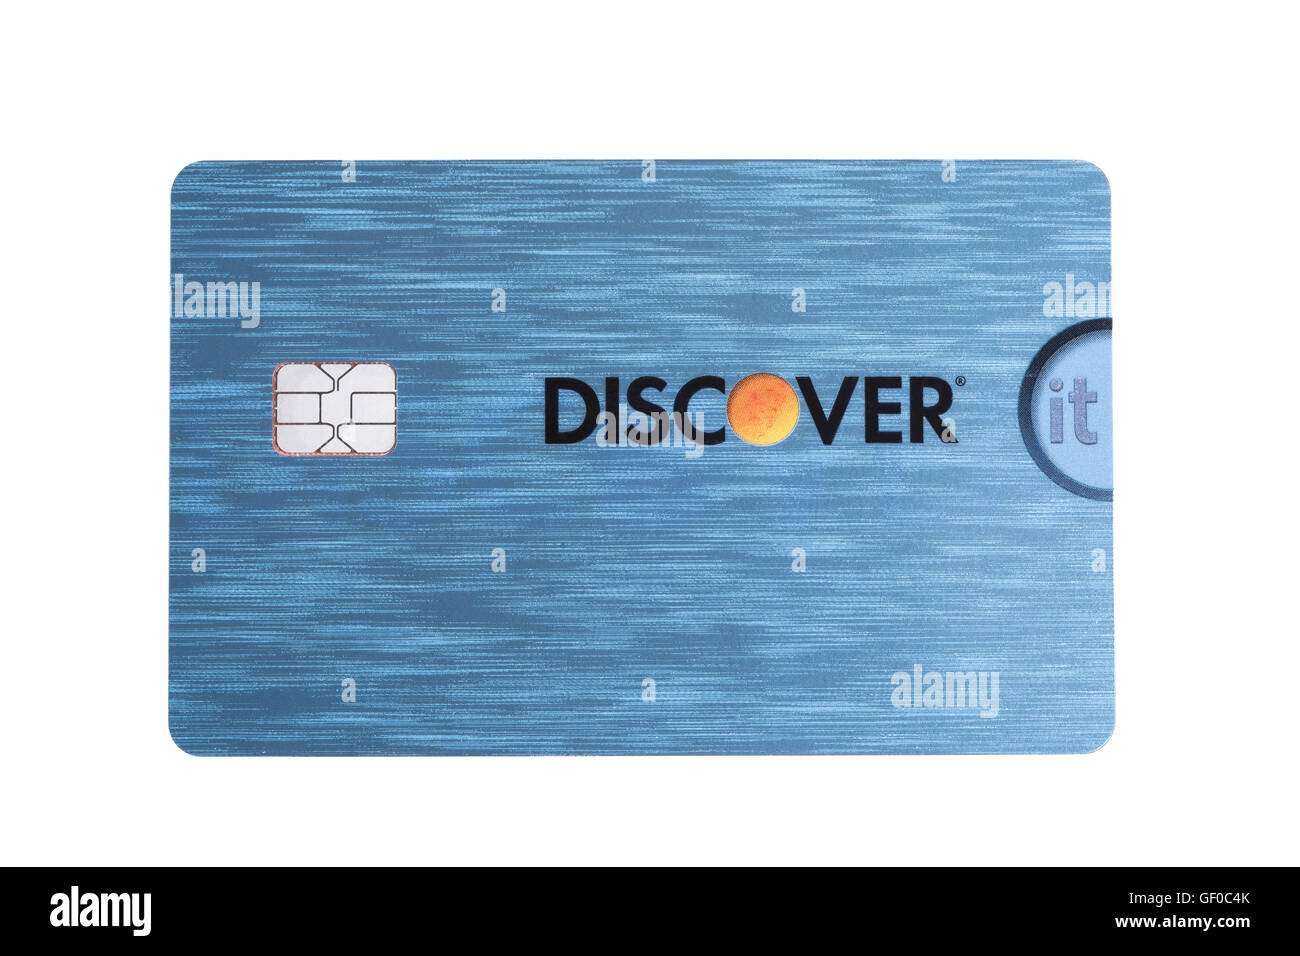 Discover Credit Card High Resolution Stock Photography and Images